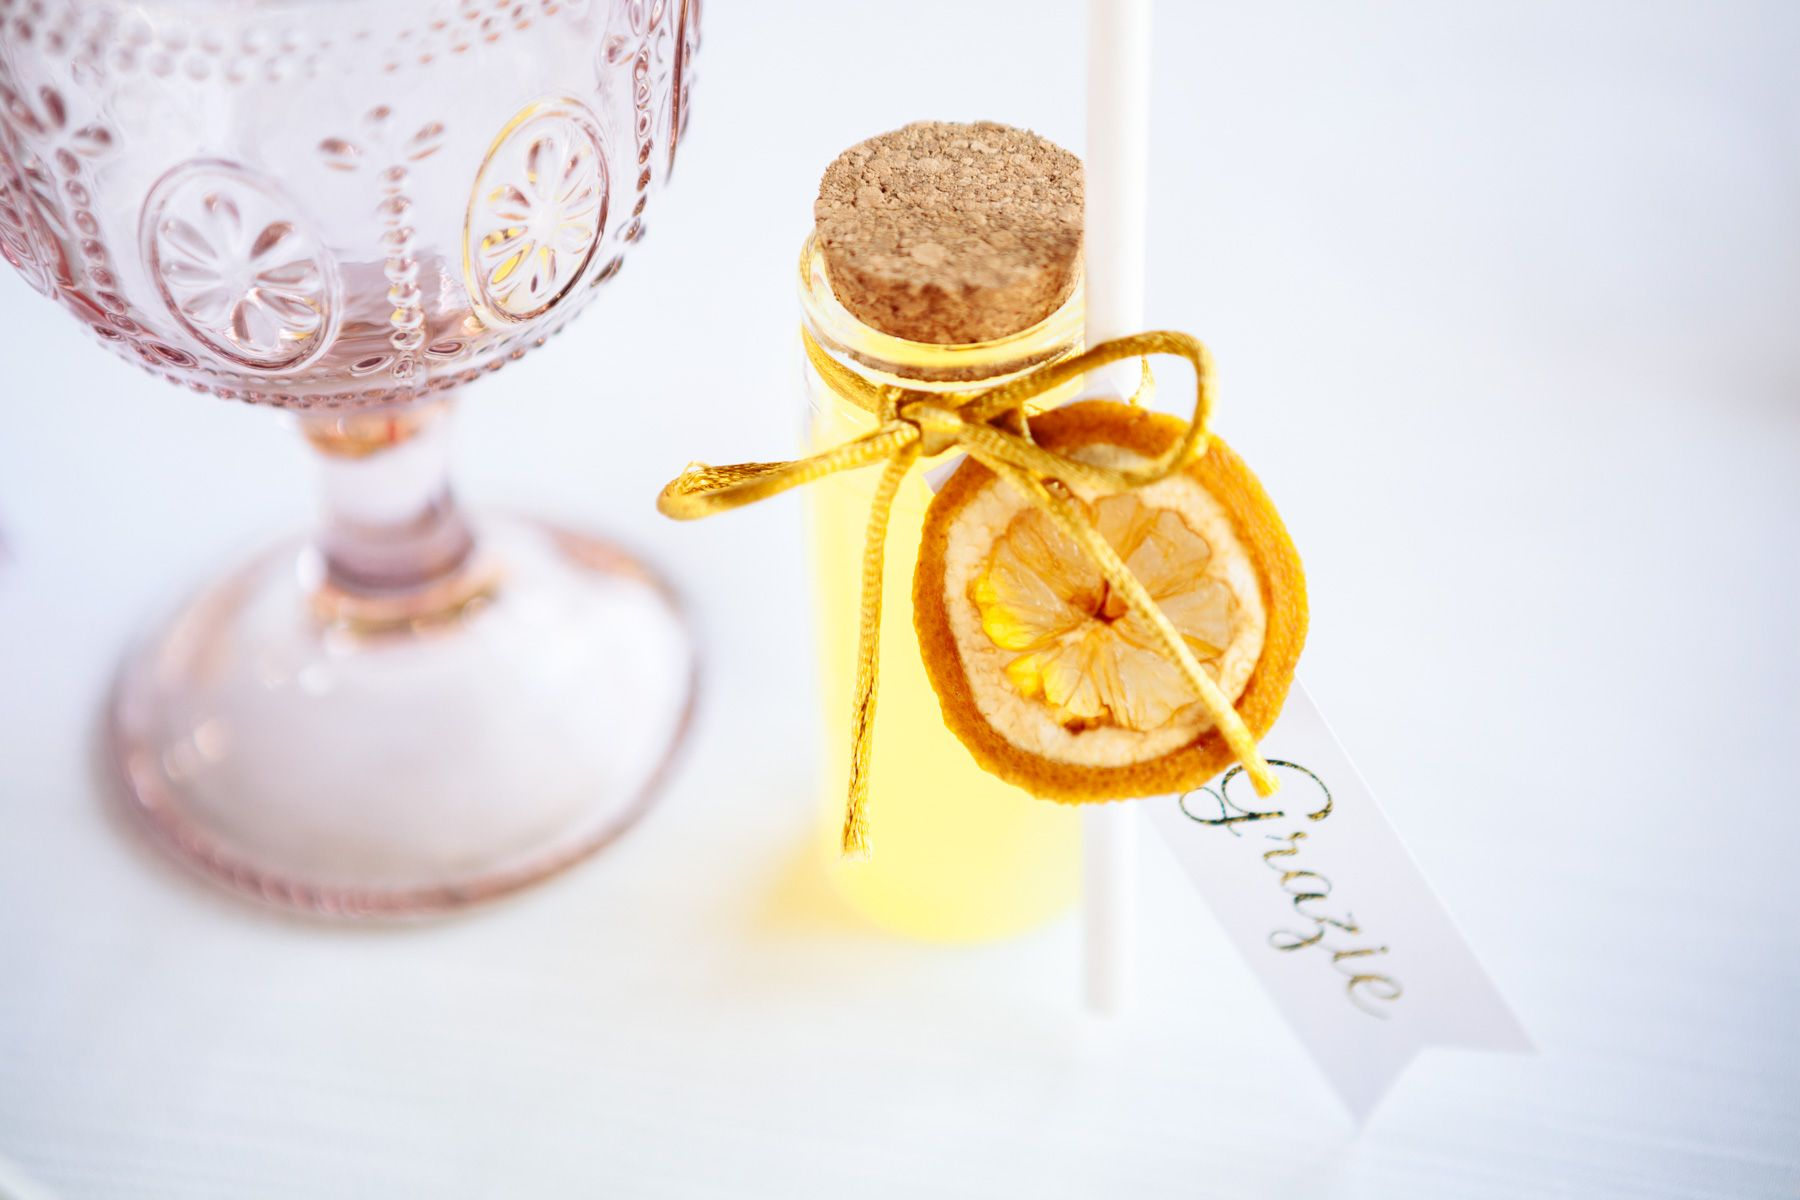 tuscany inspired wedding favours. little diy bottles filled with limoncello